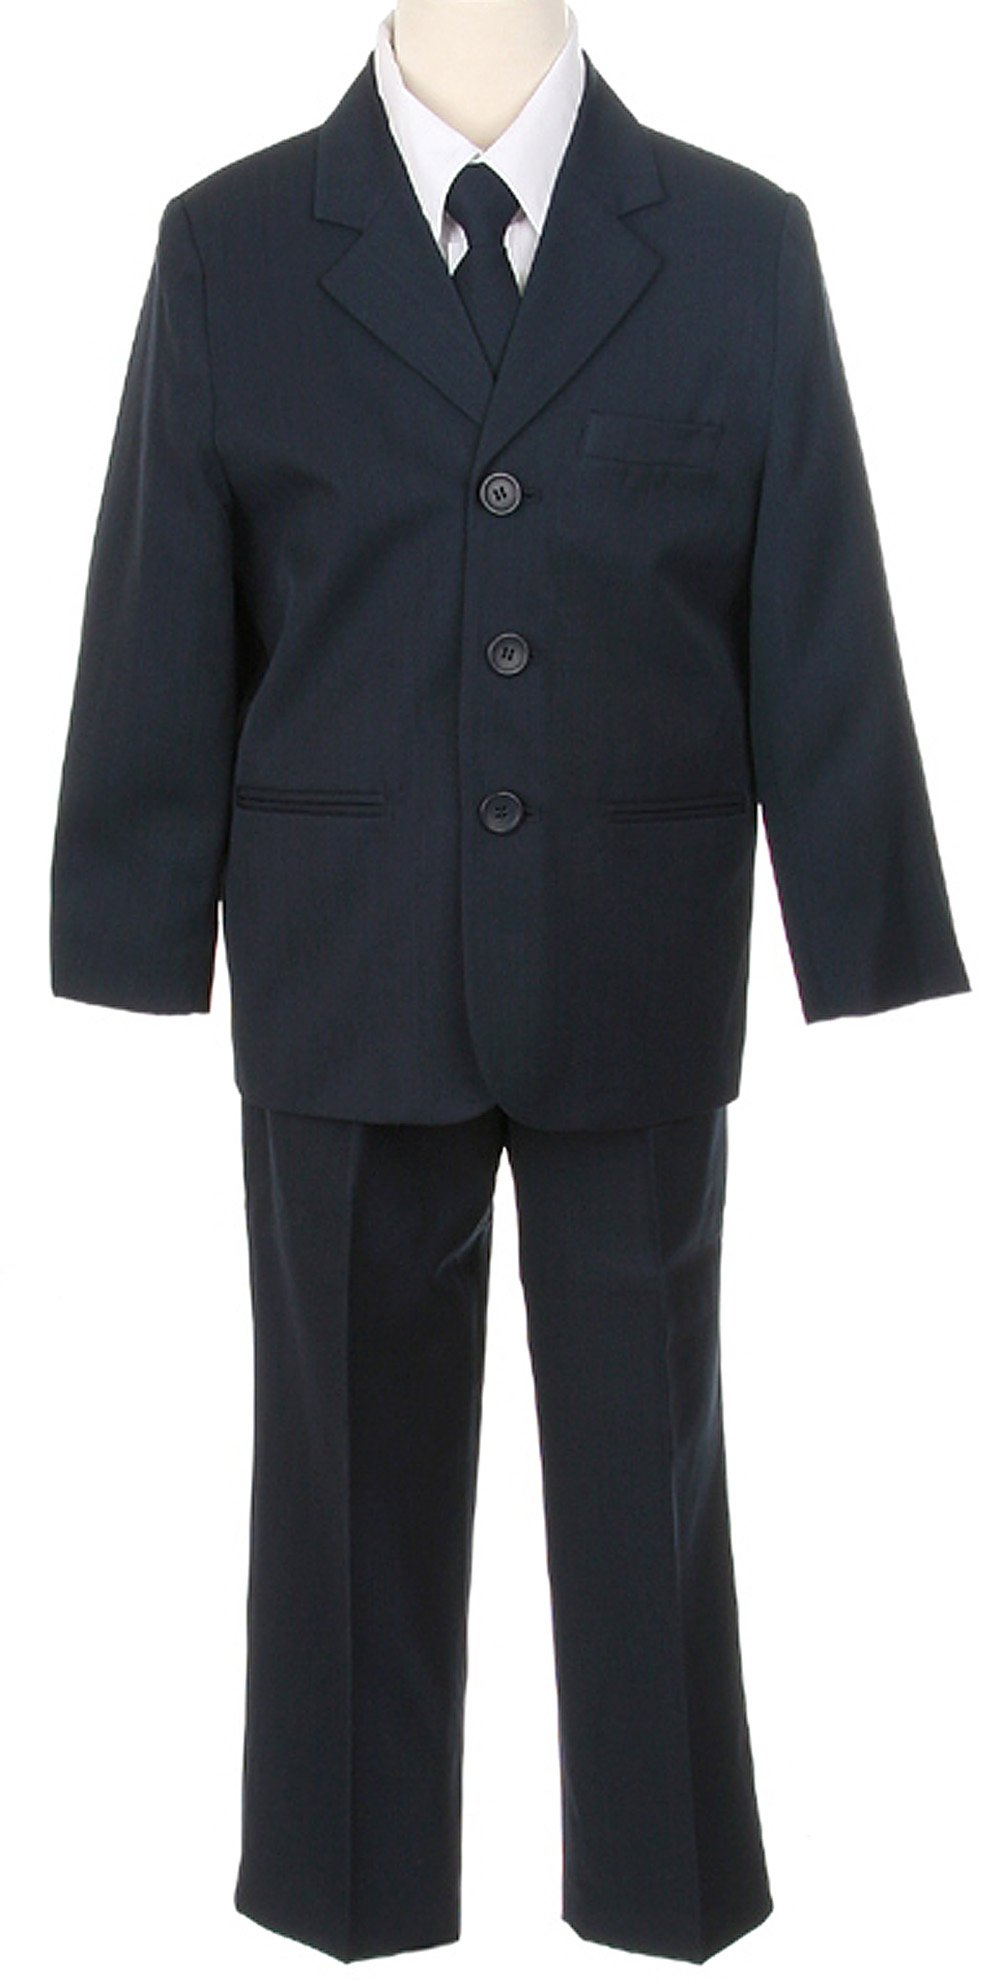 Boys Three Button Single Breasted Formal Suit 5-Piece - Navy - Size 12 by COLE